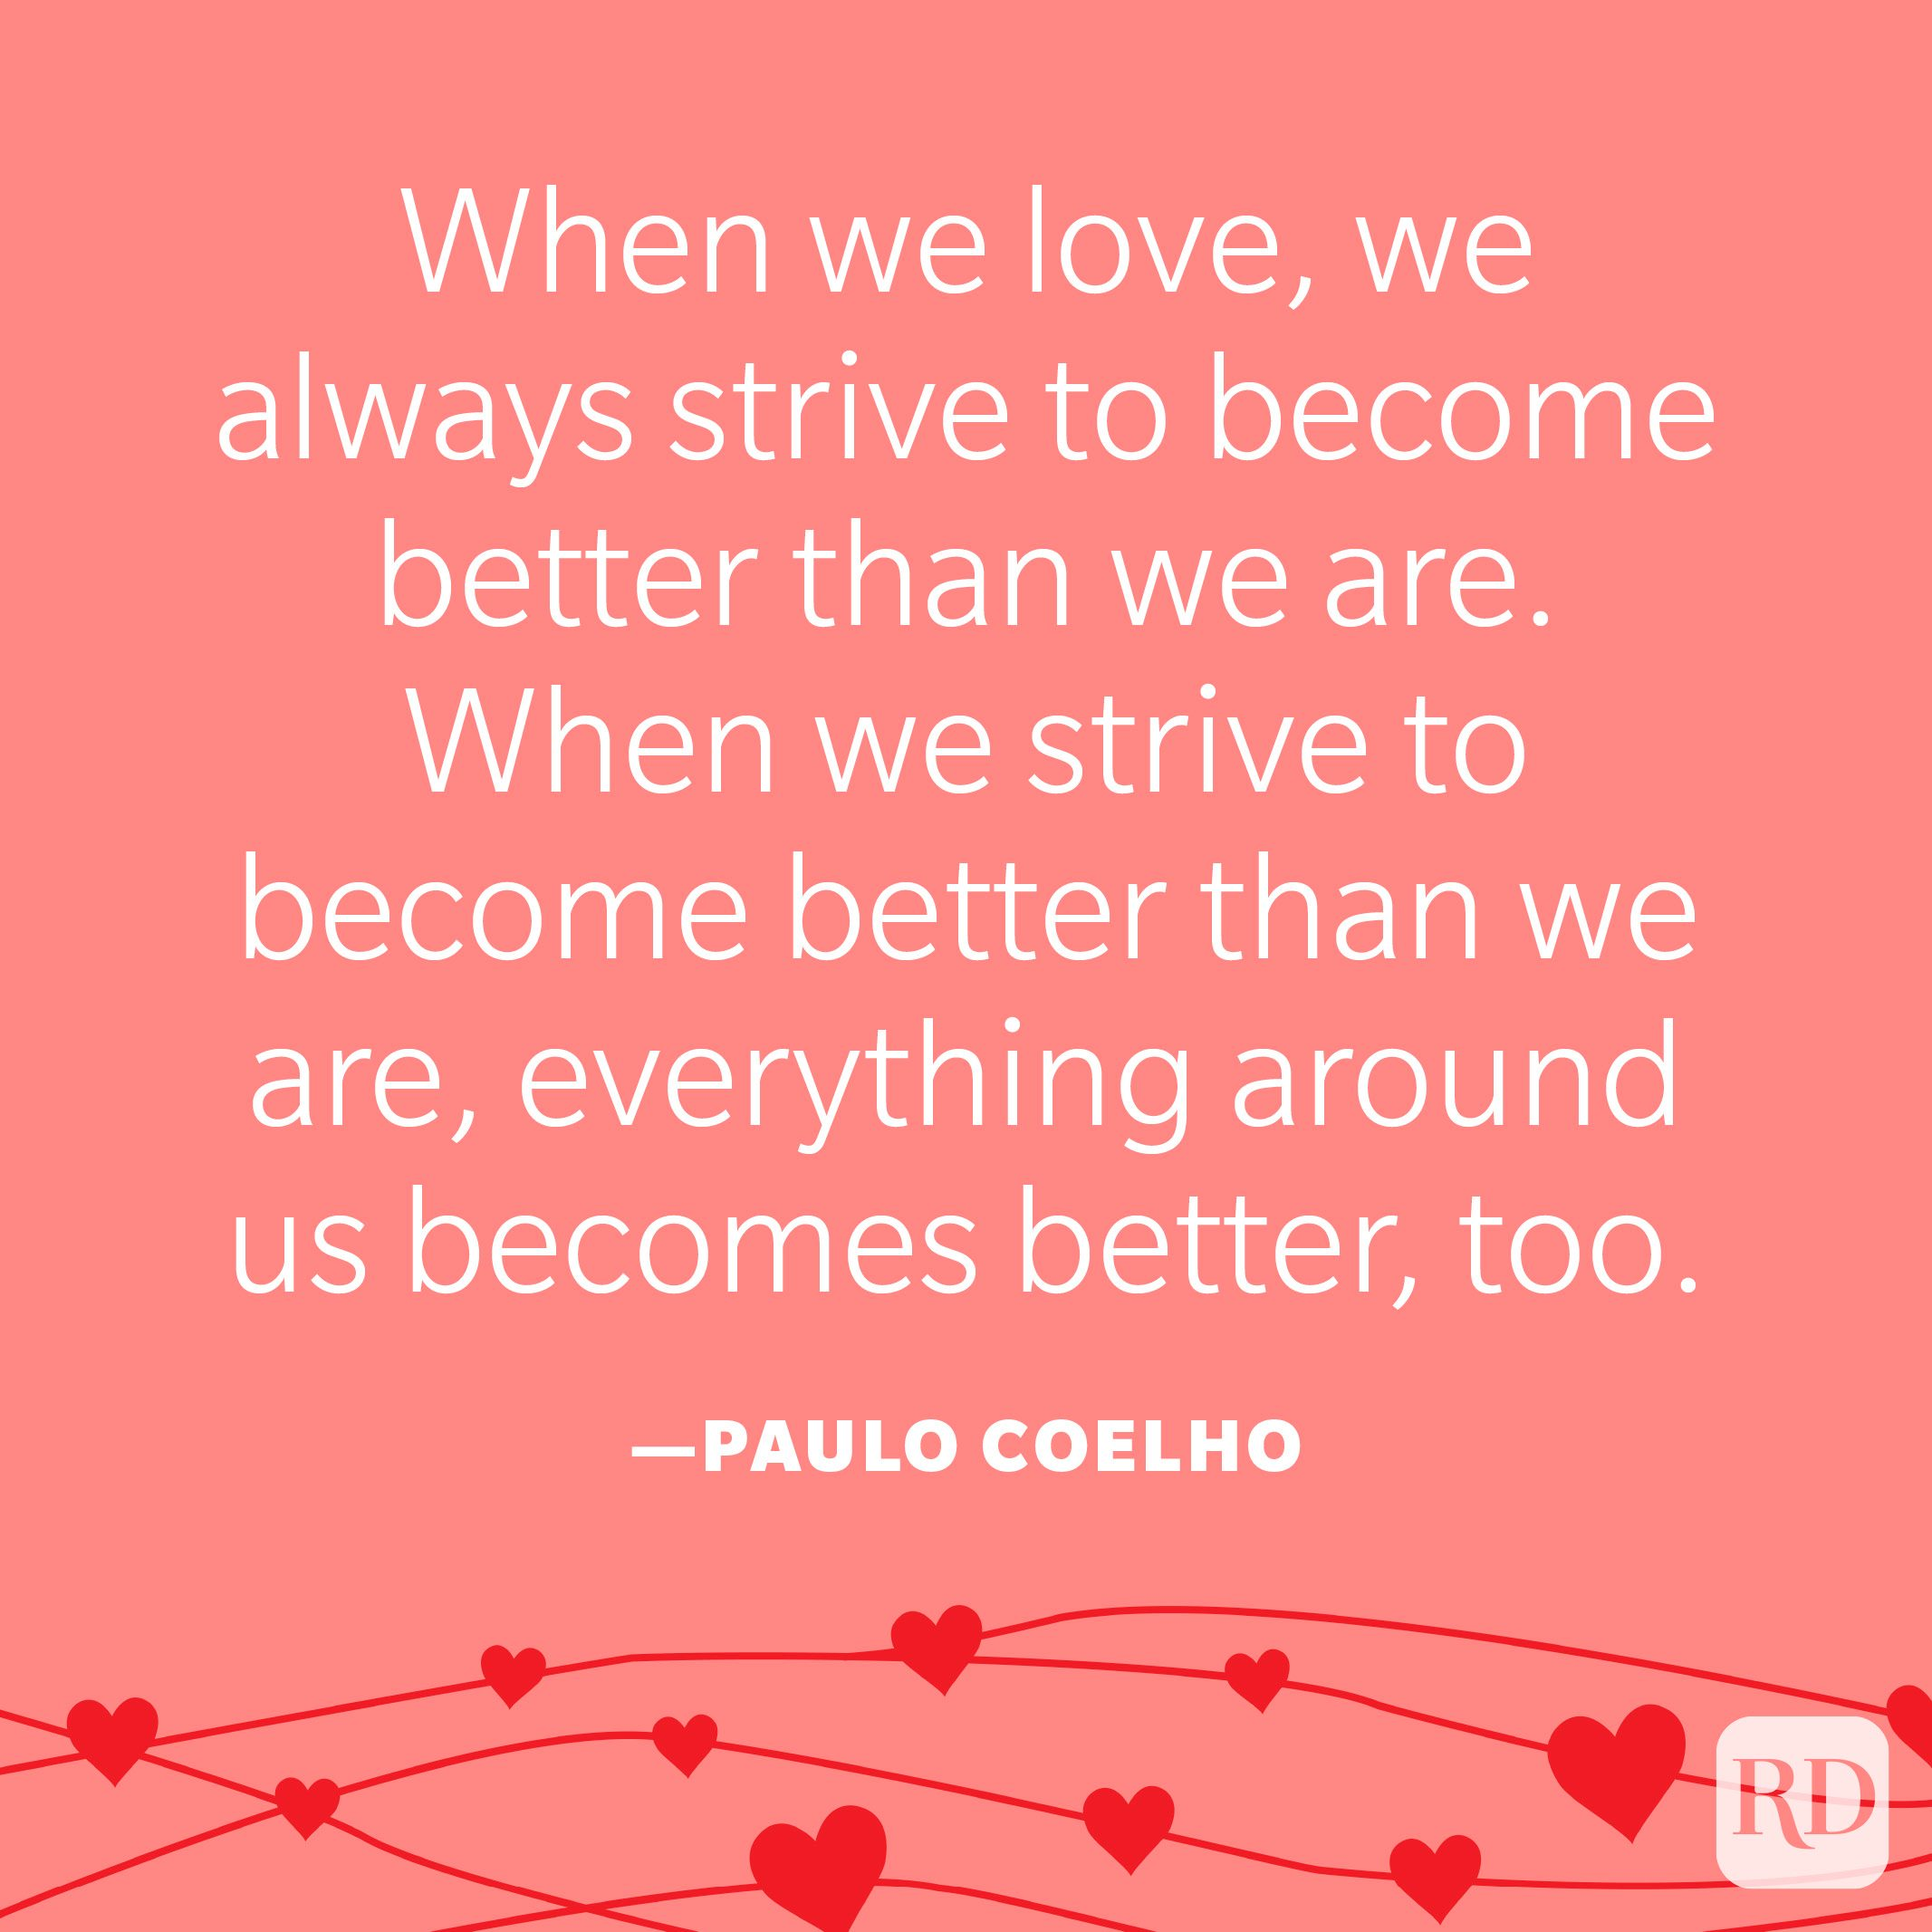 """""""When we love, we always strive to become better than we are. When we strive to become better than we are, everything around us becomes better, too."""" —Paulo Coelho"""